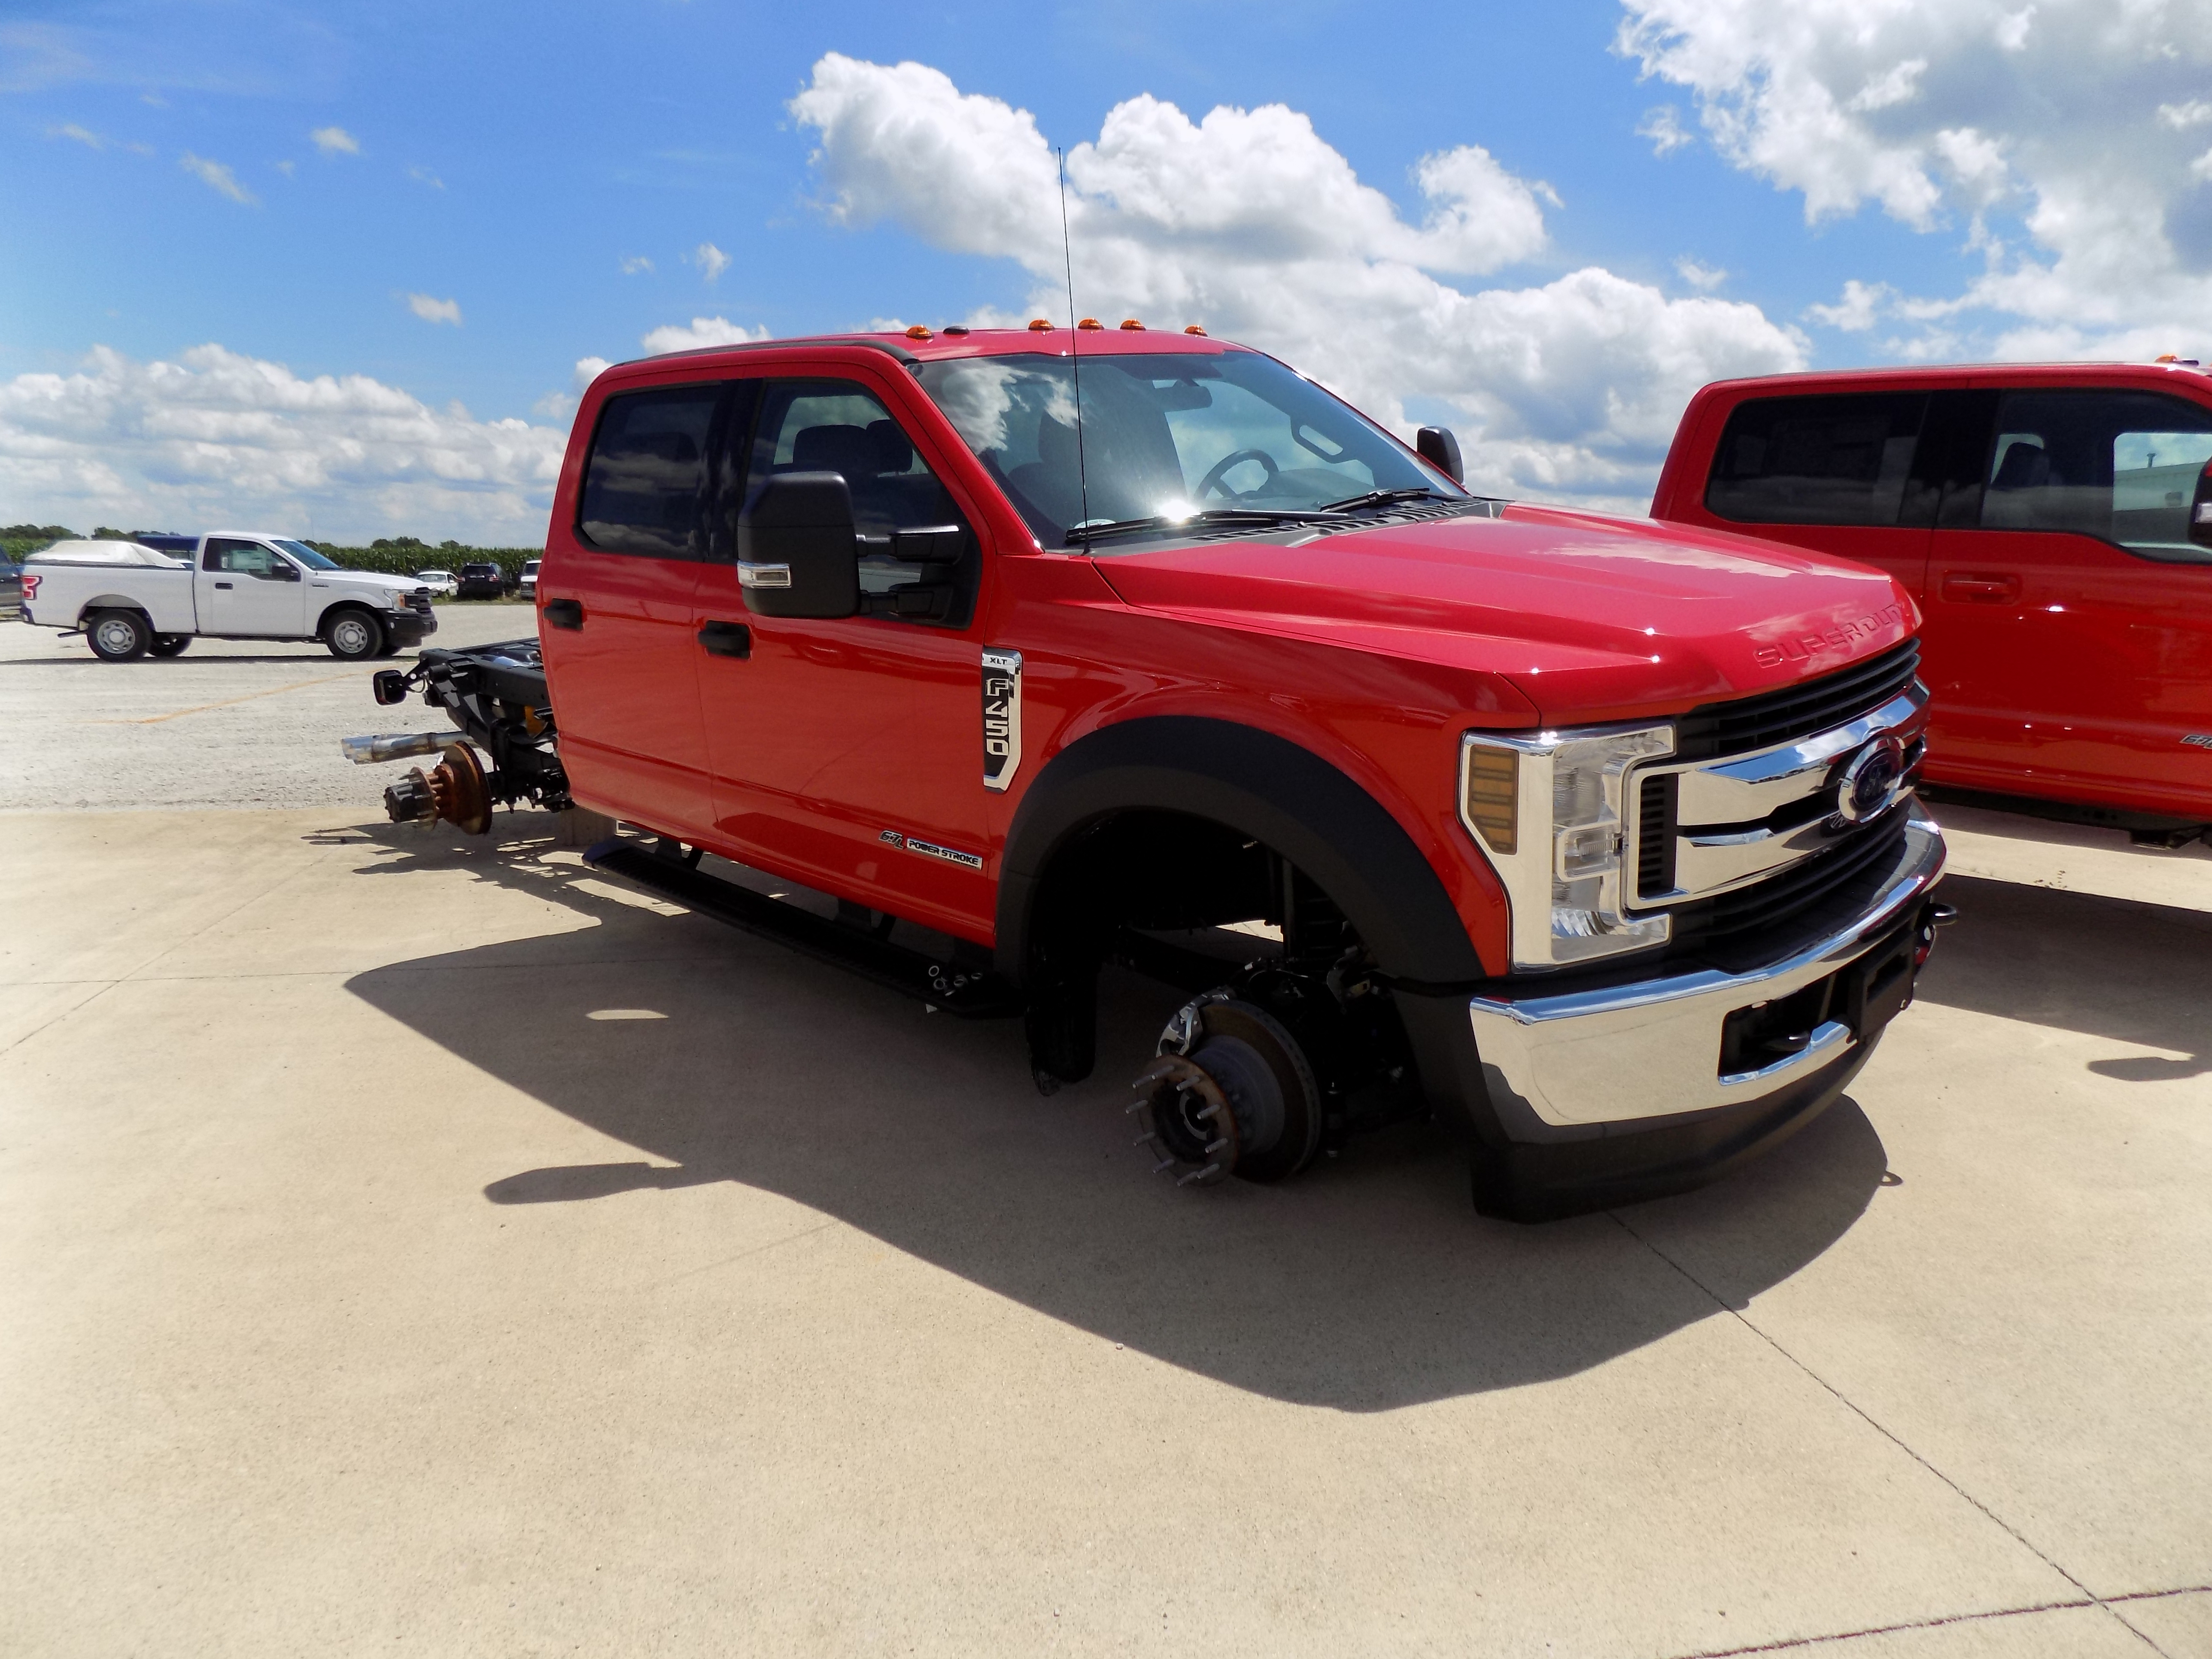 During The Early Morning Hours Of July 26 Thieves Stripped Two New Ford Super Duty F 450 Xlt Trucks 12 Wheels Which Were Loaded And Hauled Away In A